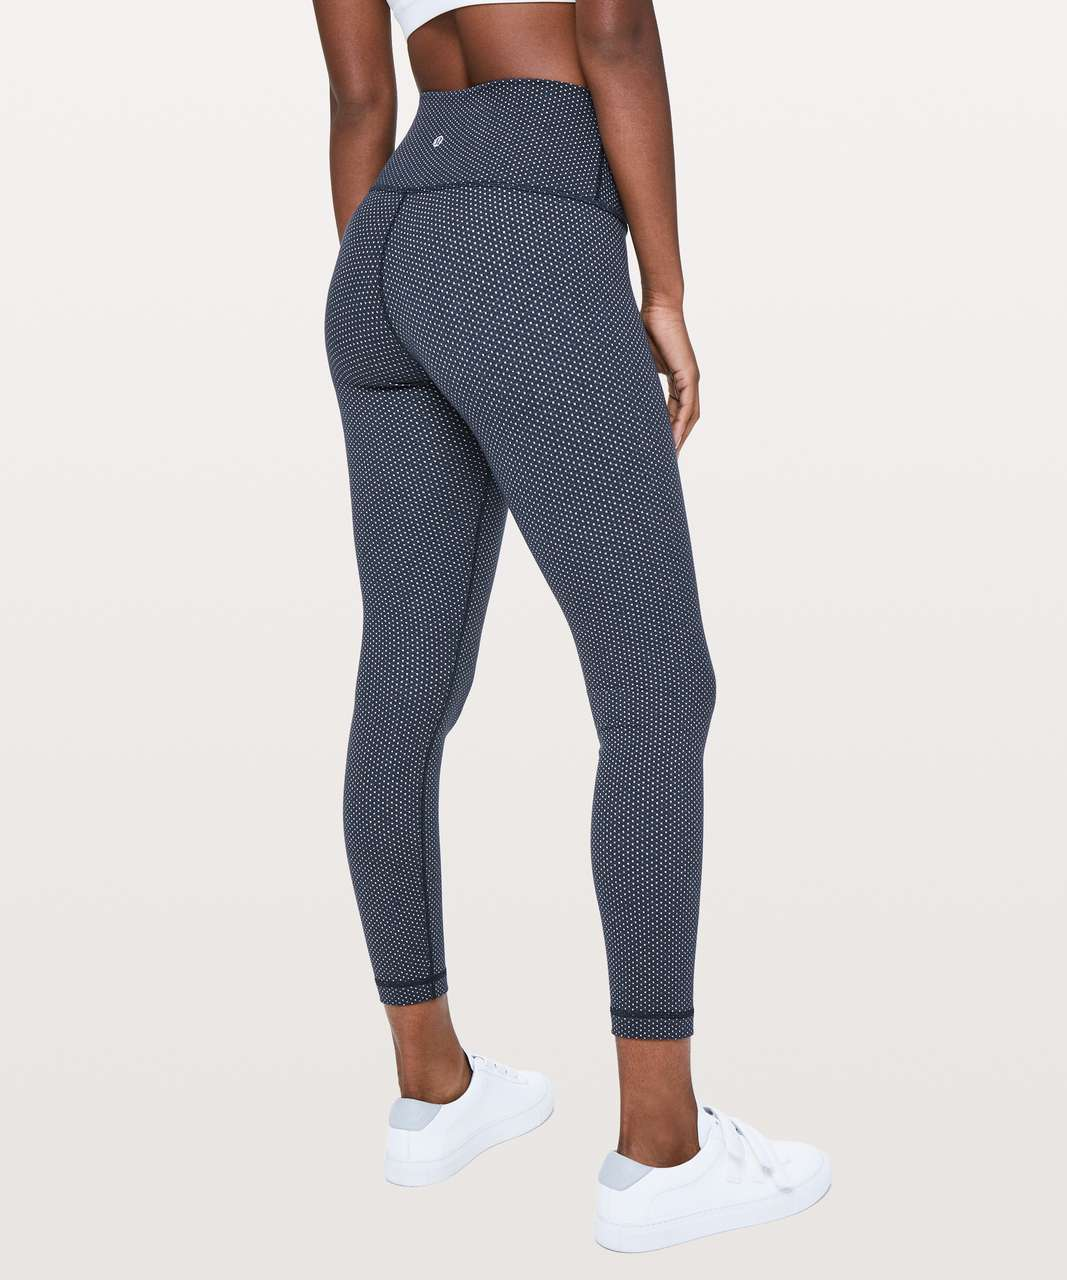 "Lululemon Wunder Under Hi-Rise 7/8 Tight *25"" - Pacific Pointe Jacquard True Navy Onyx Blue"